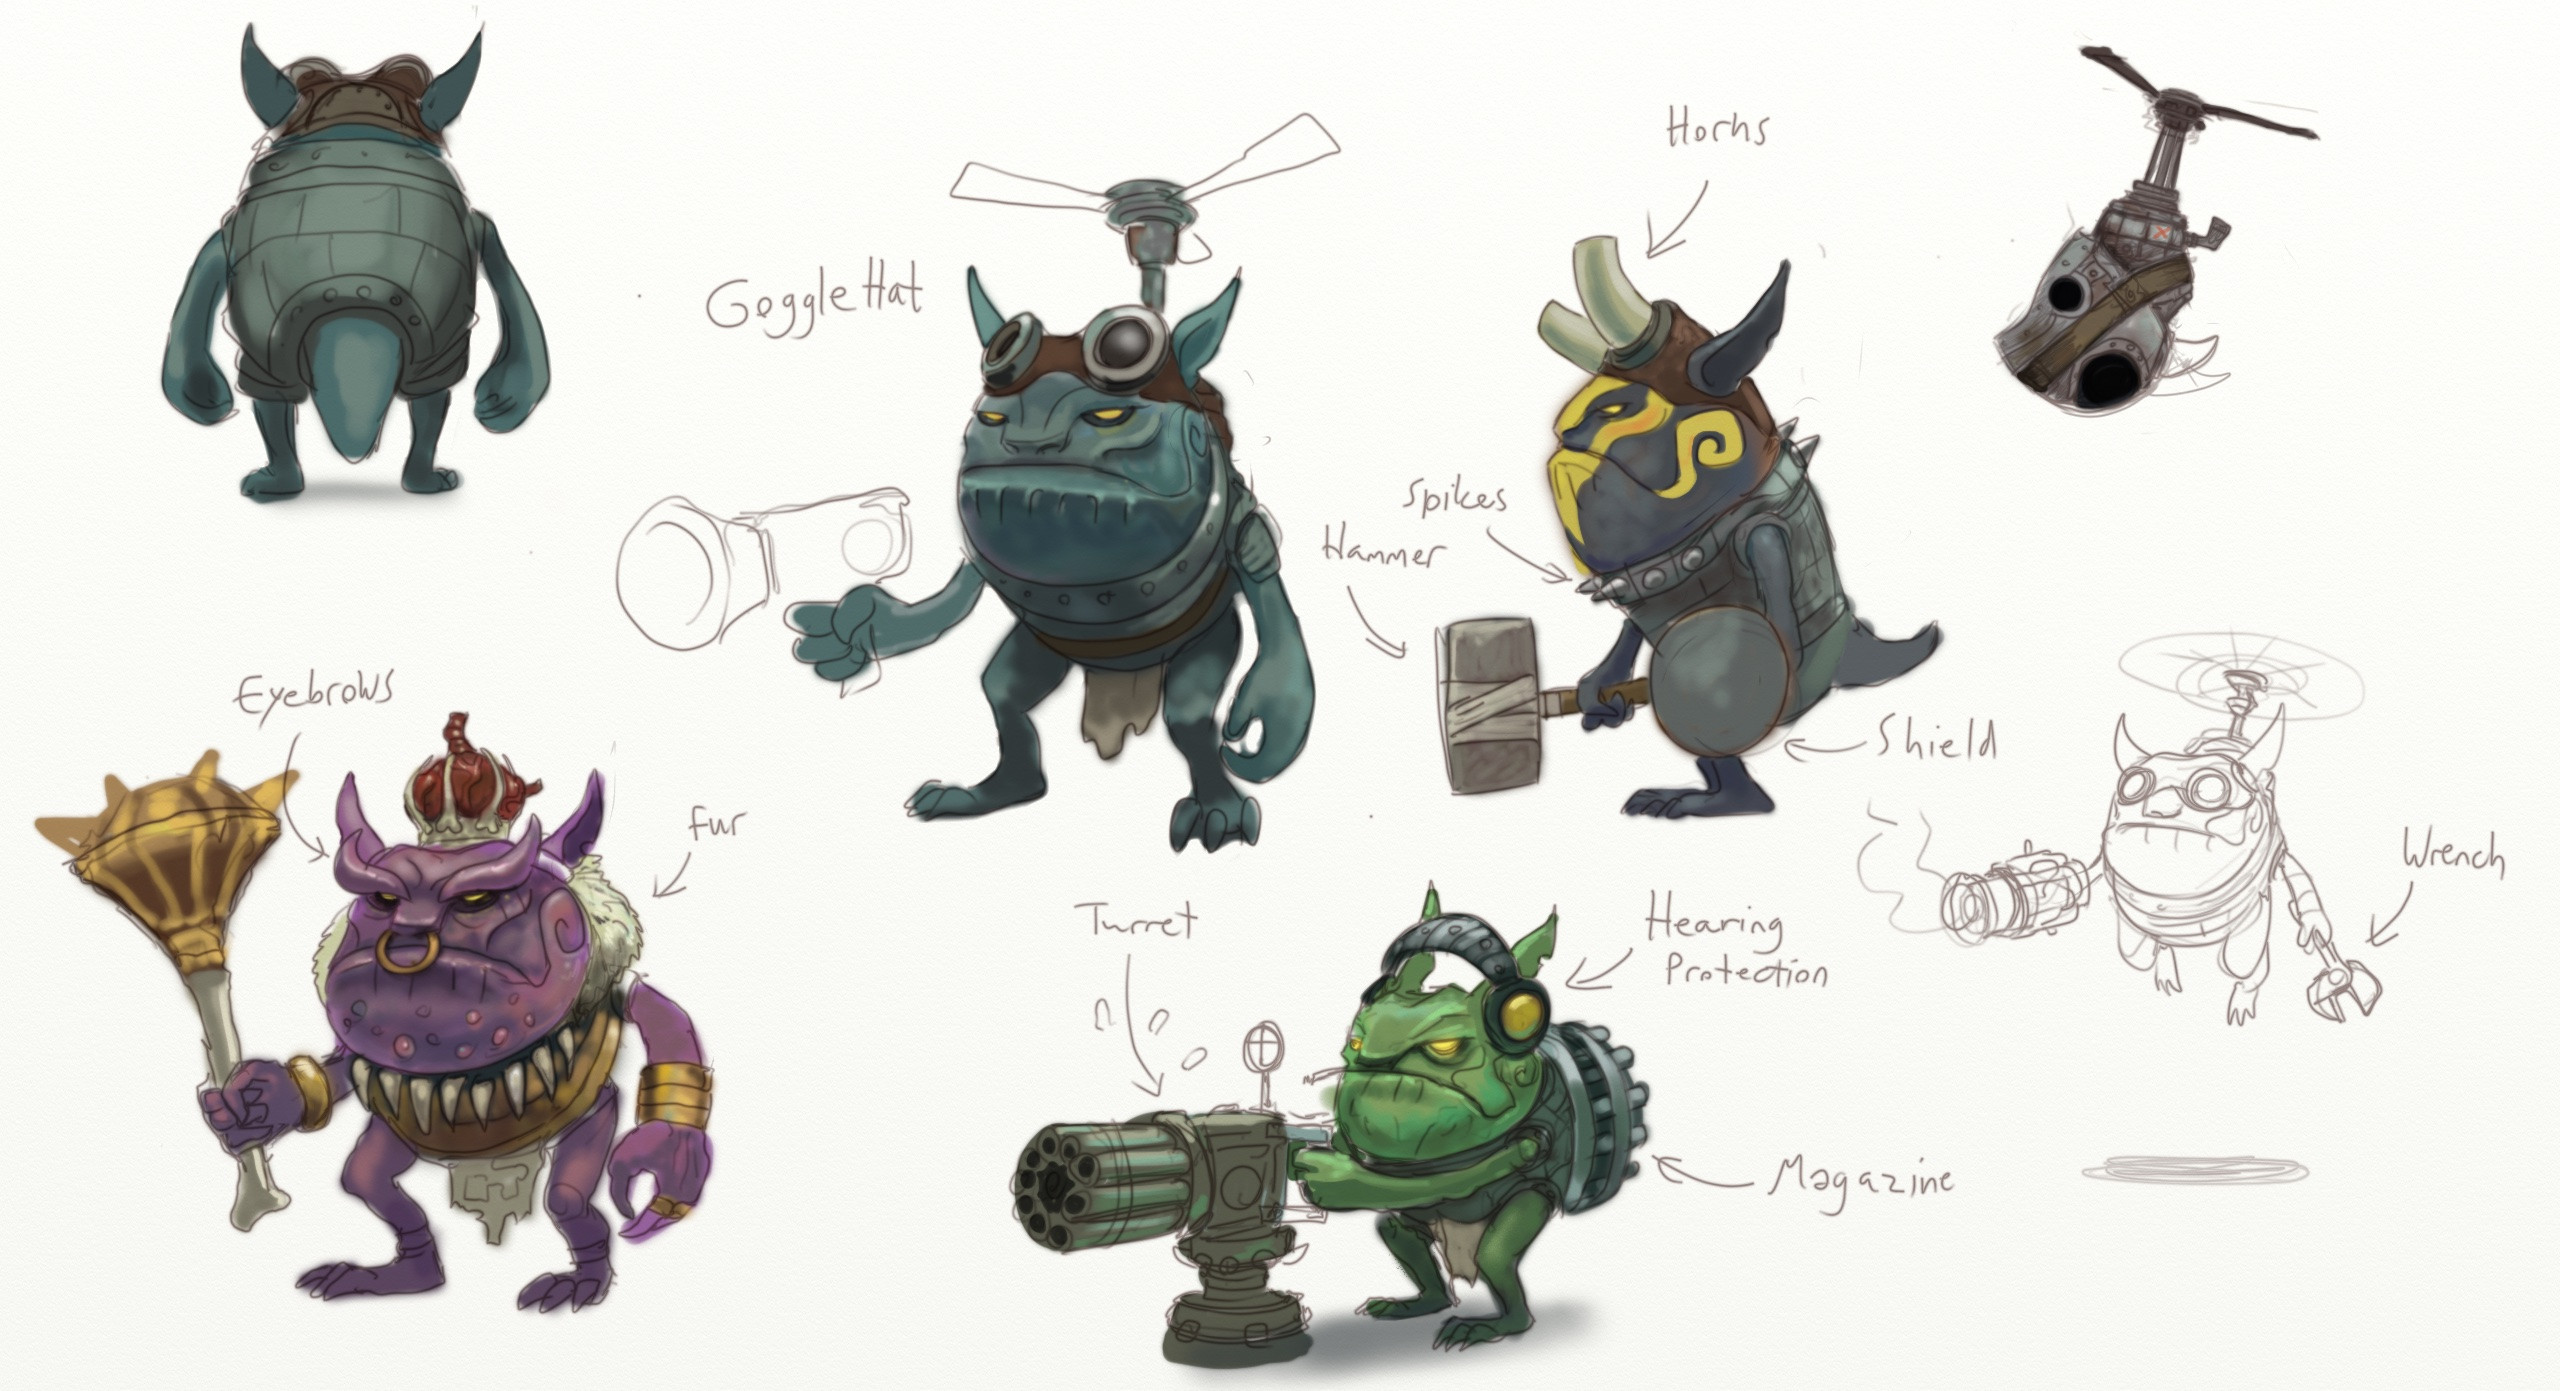 Every RPGs need their own signature goblins!